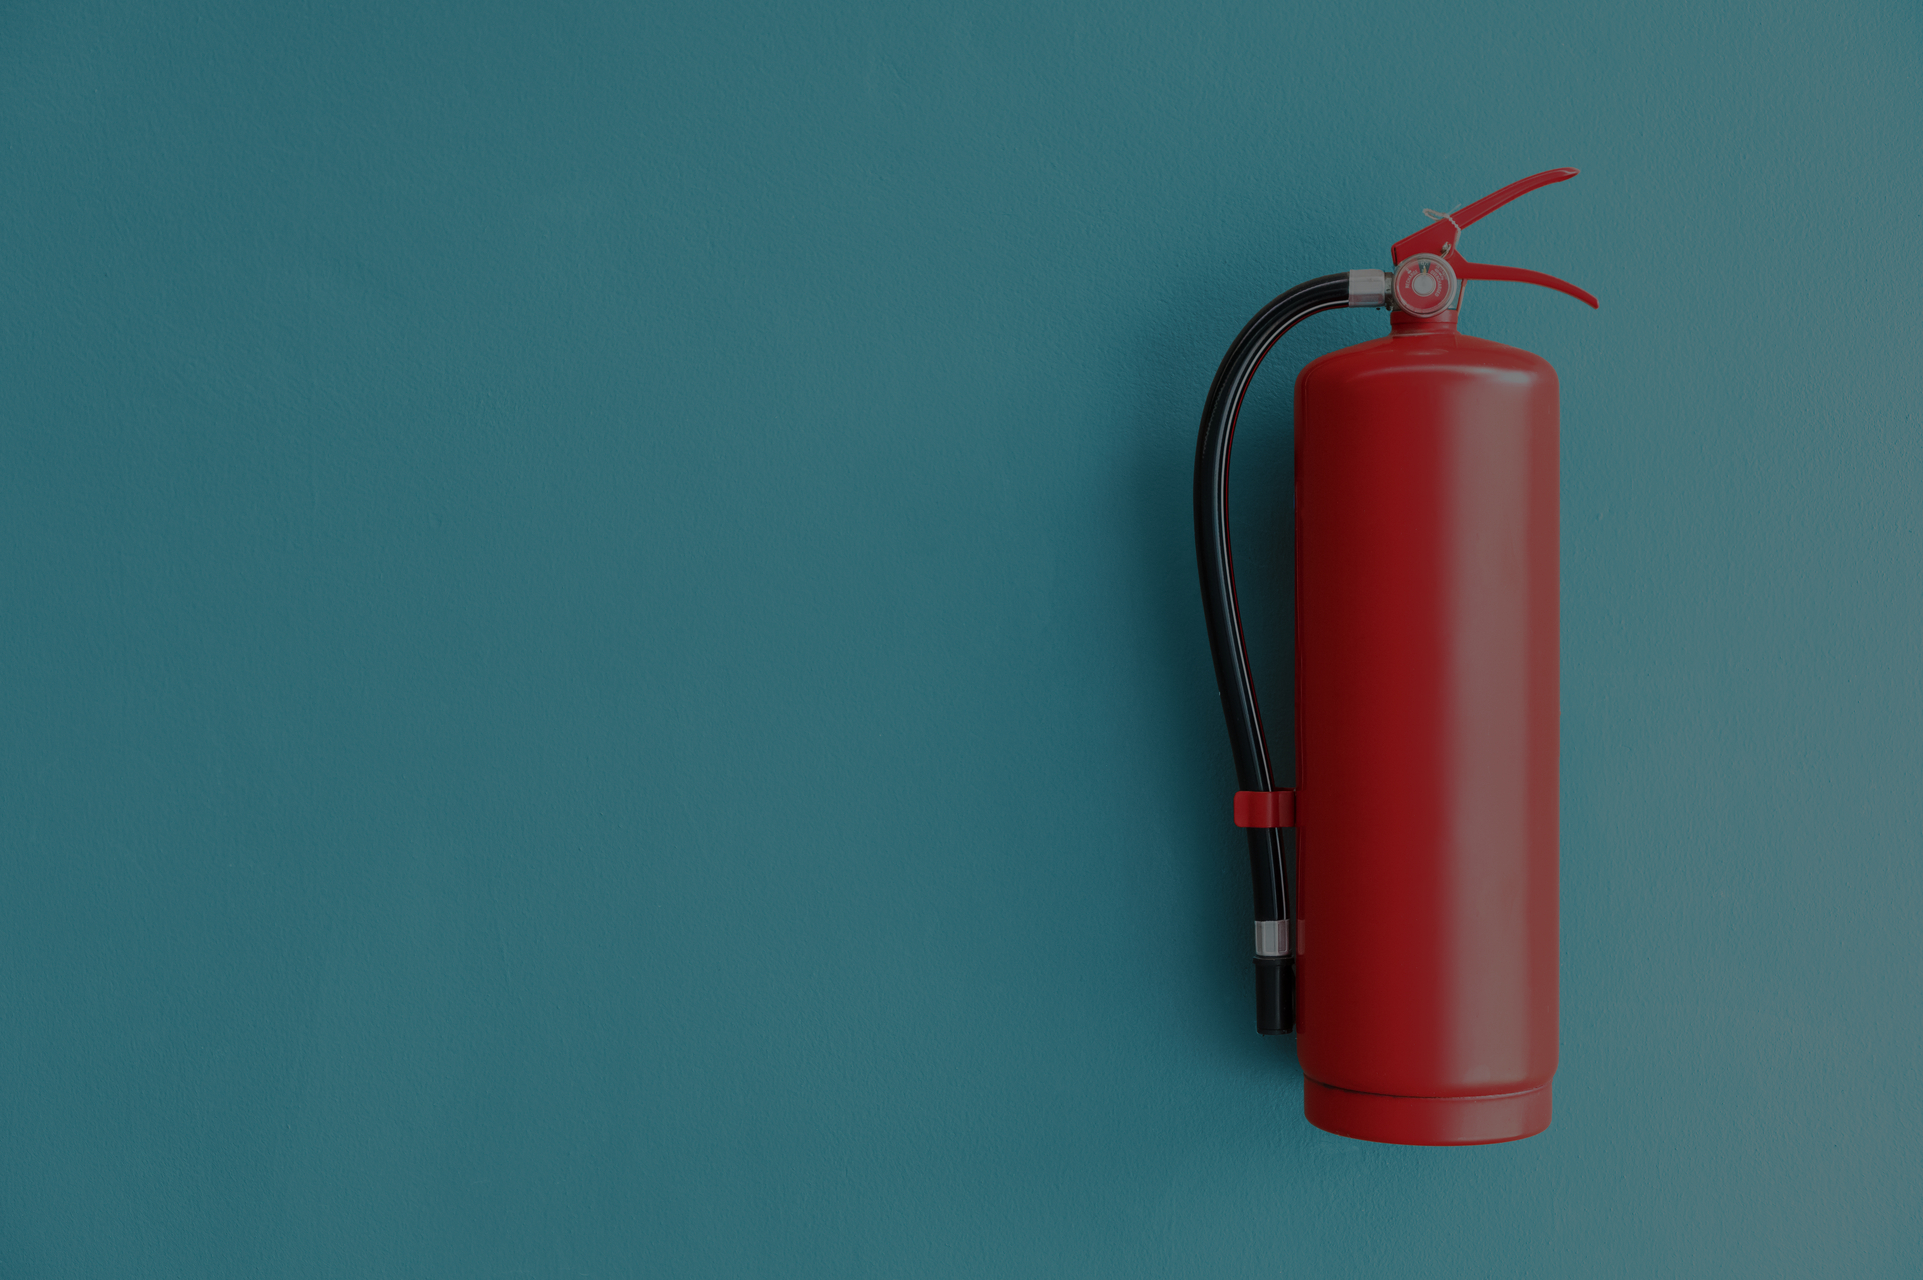 4 Key Questions You Need to Ask About Fire Extinguishers